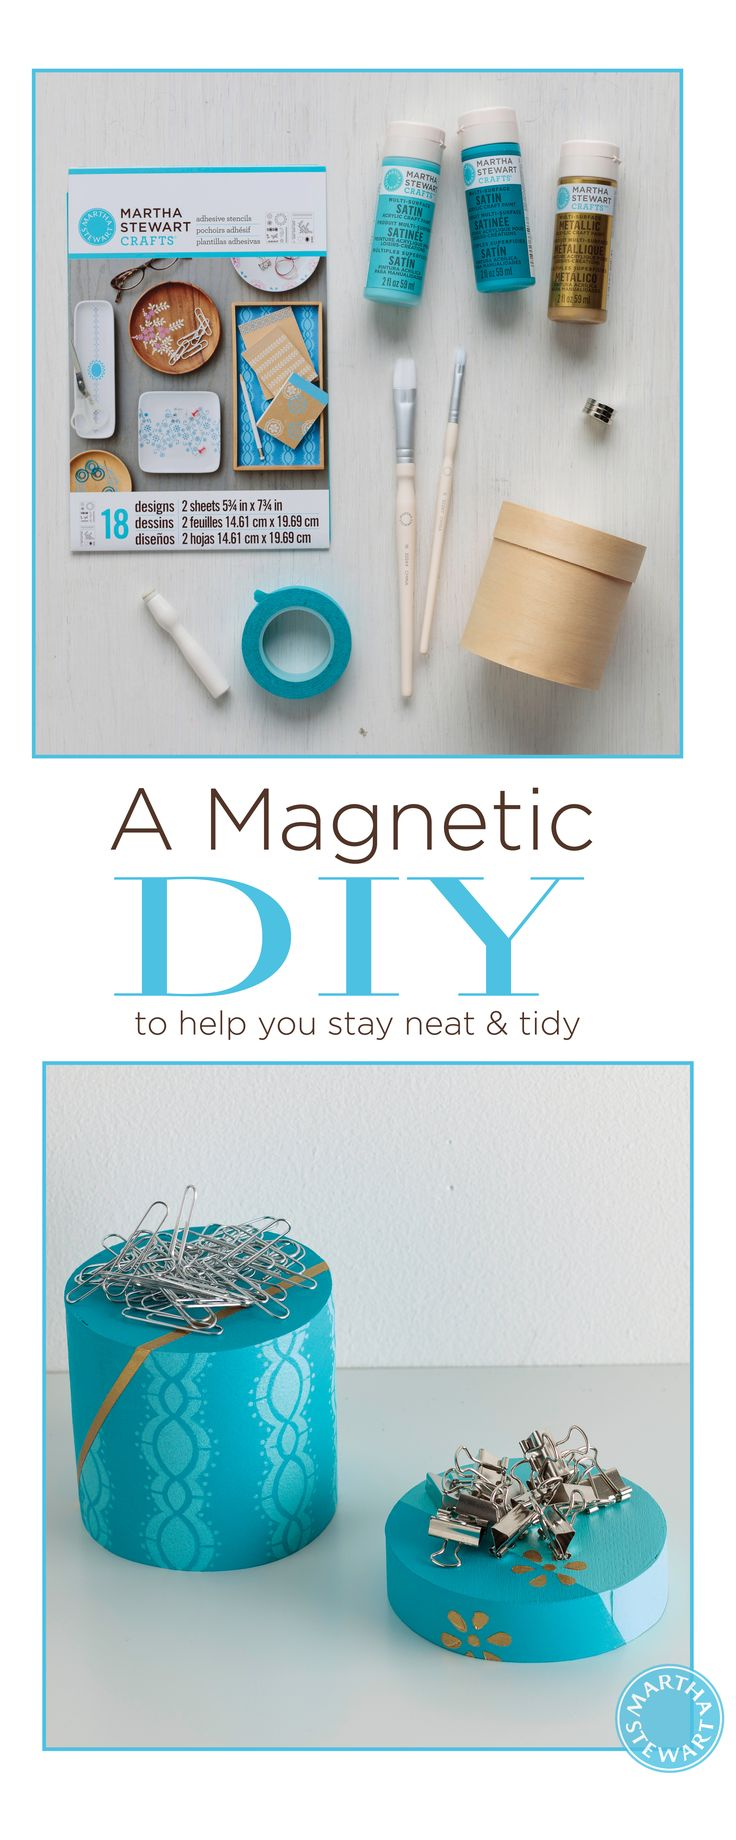 Turn your office decor up a notch with this nifty DIY magnetic paperclip holder that features fun stencils and a chic color palette.